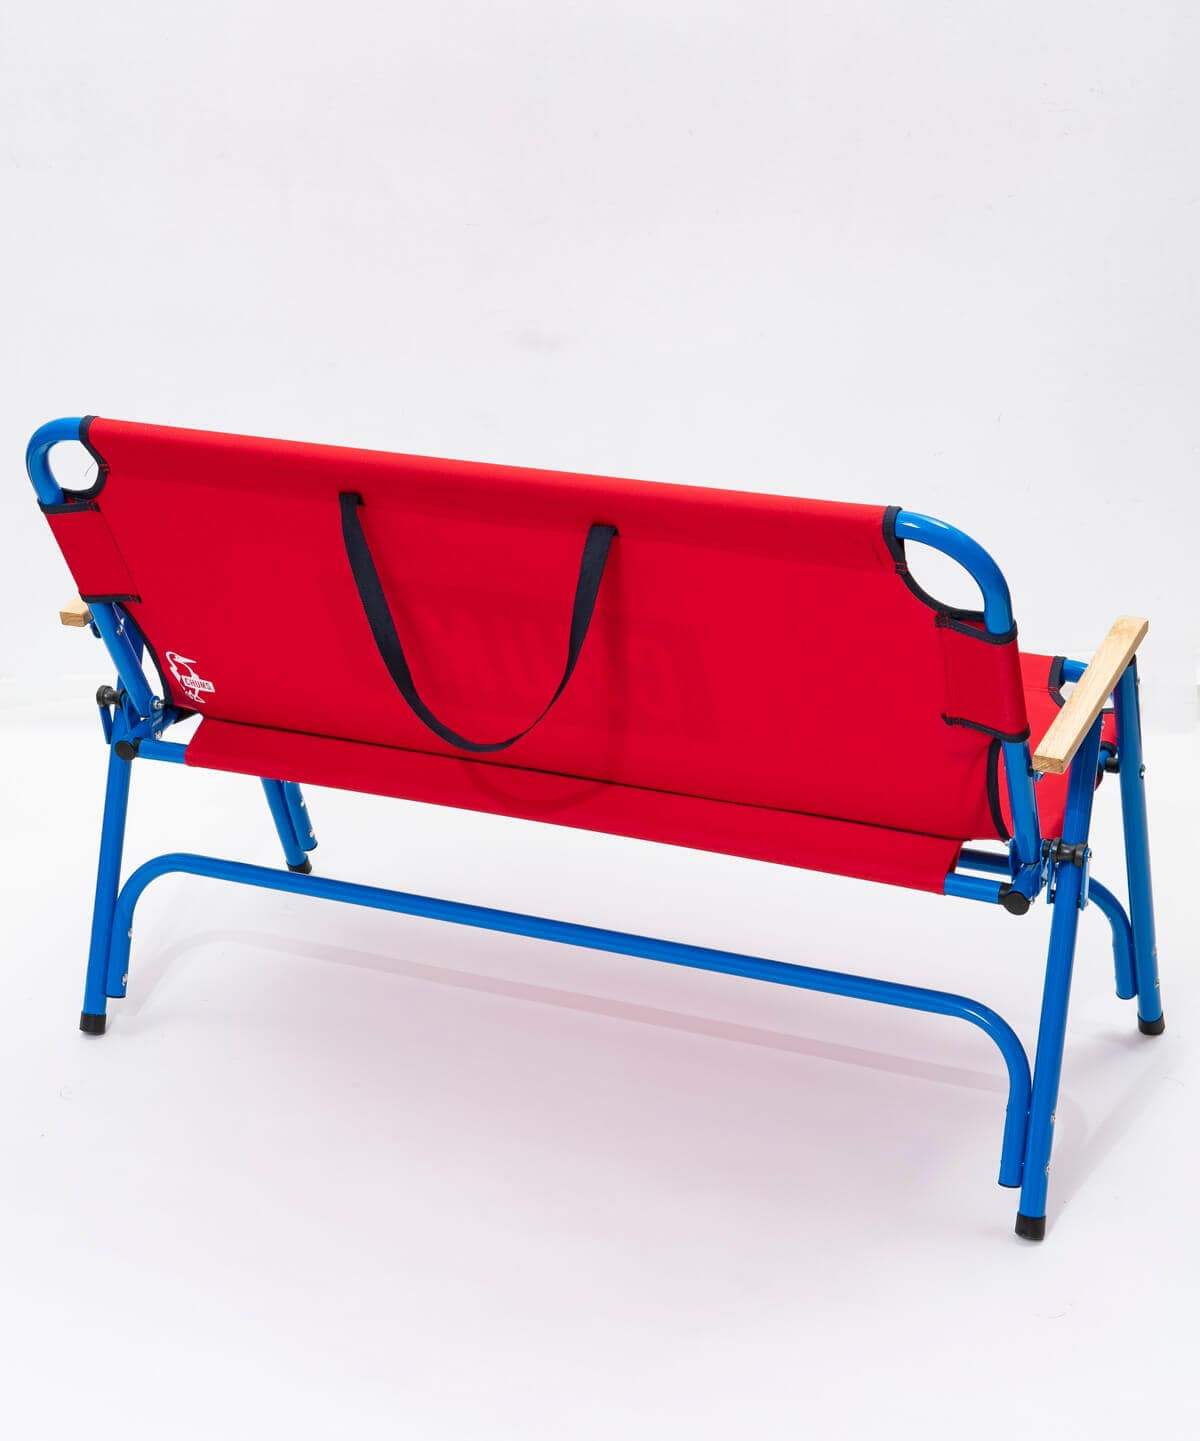 CHUMS Back with Bench(チャムスバッグウィズベンチ(キャンプ用品|椅子))